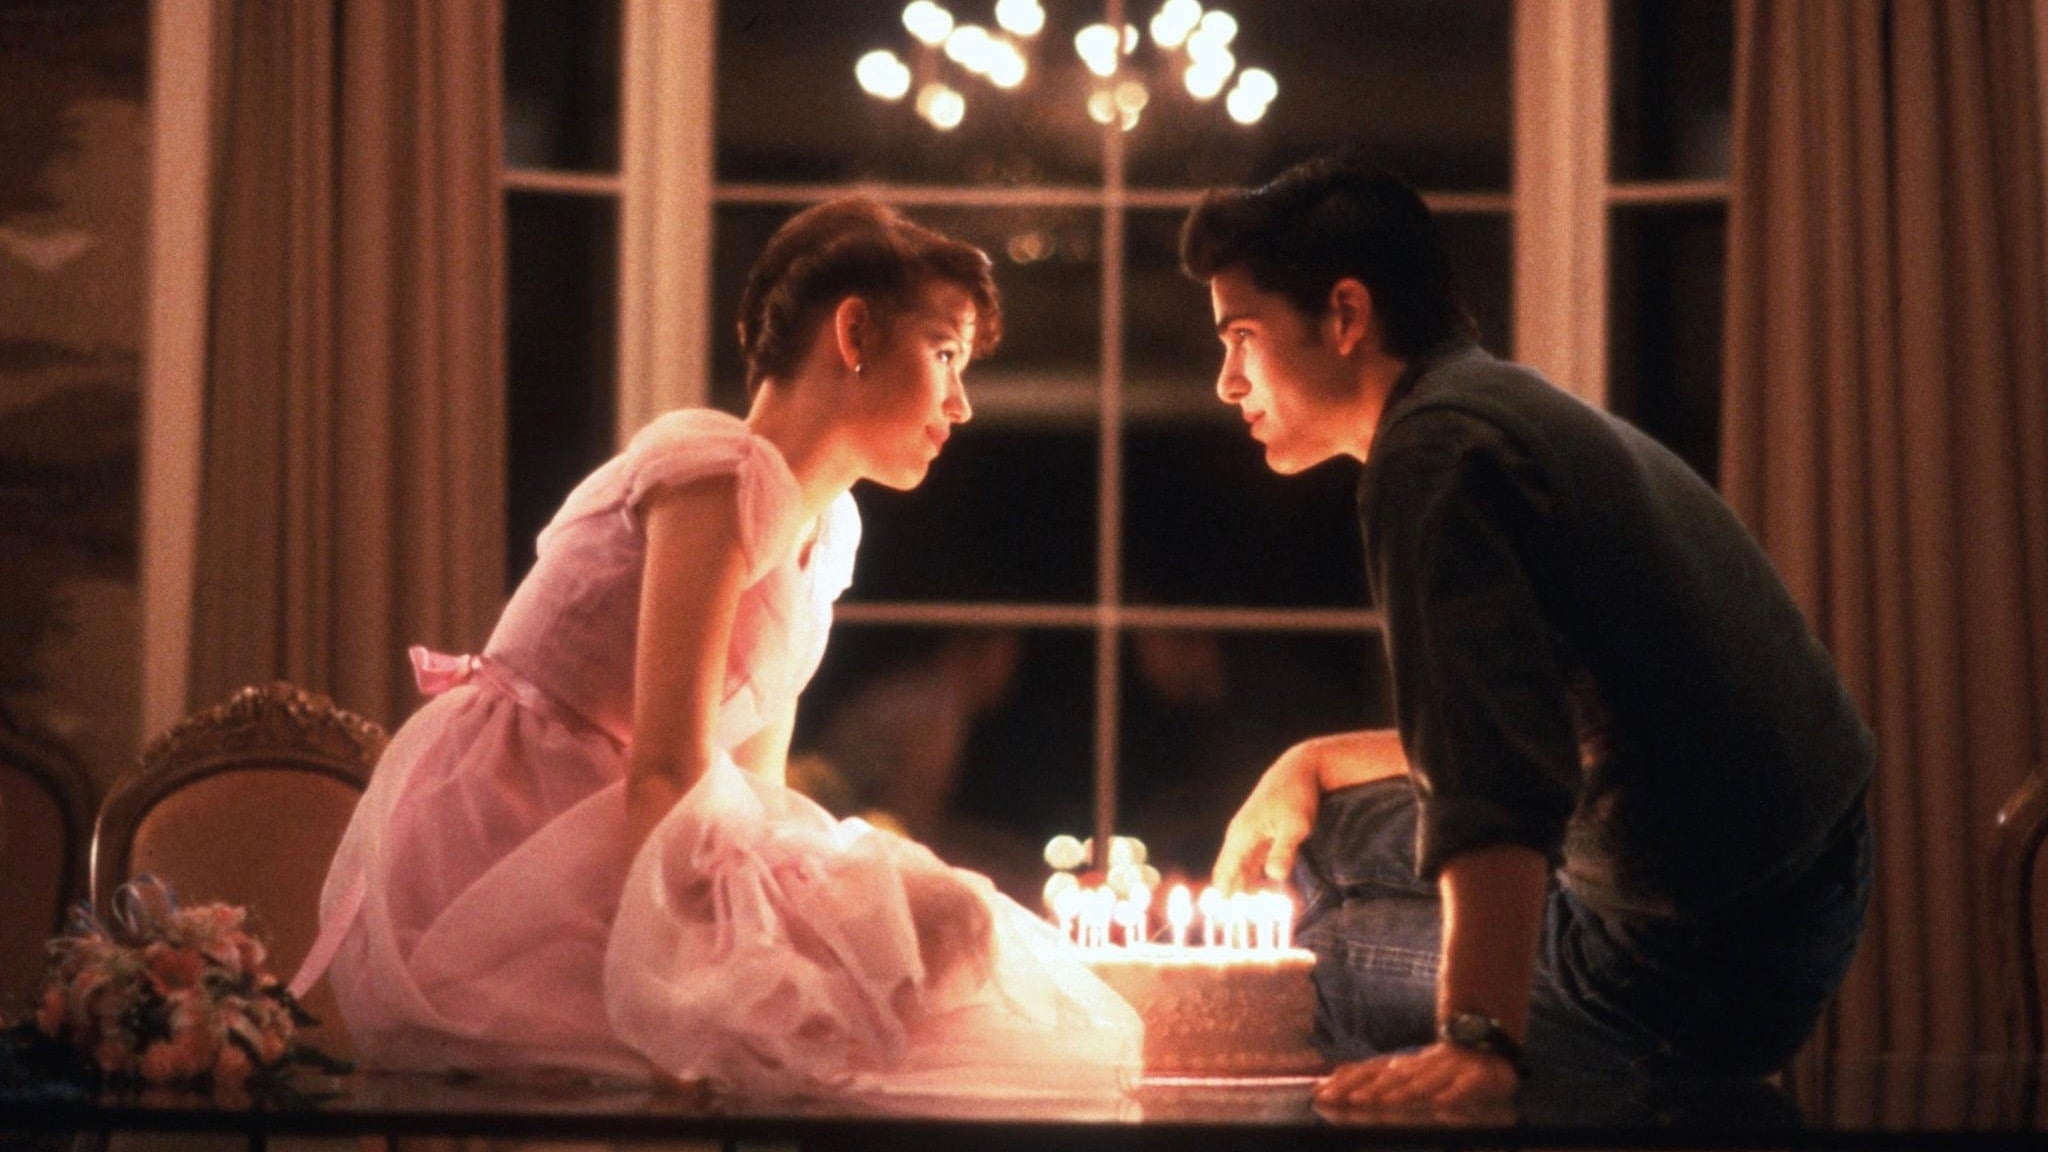 Molly Ringwald 'Could Not Agree More' That 'Sixteen Candles' Exemplifies Rape Culture